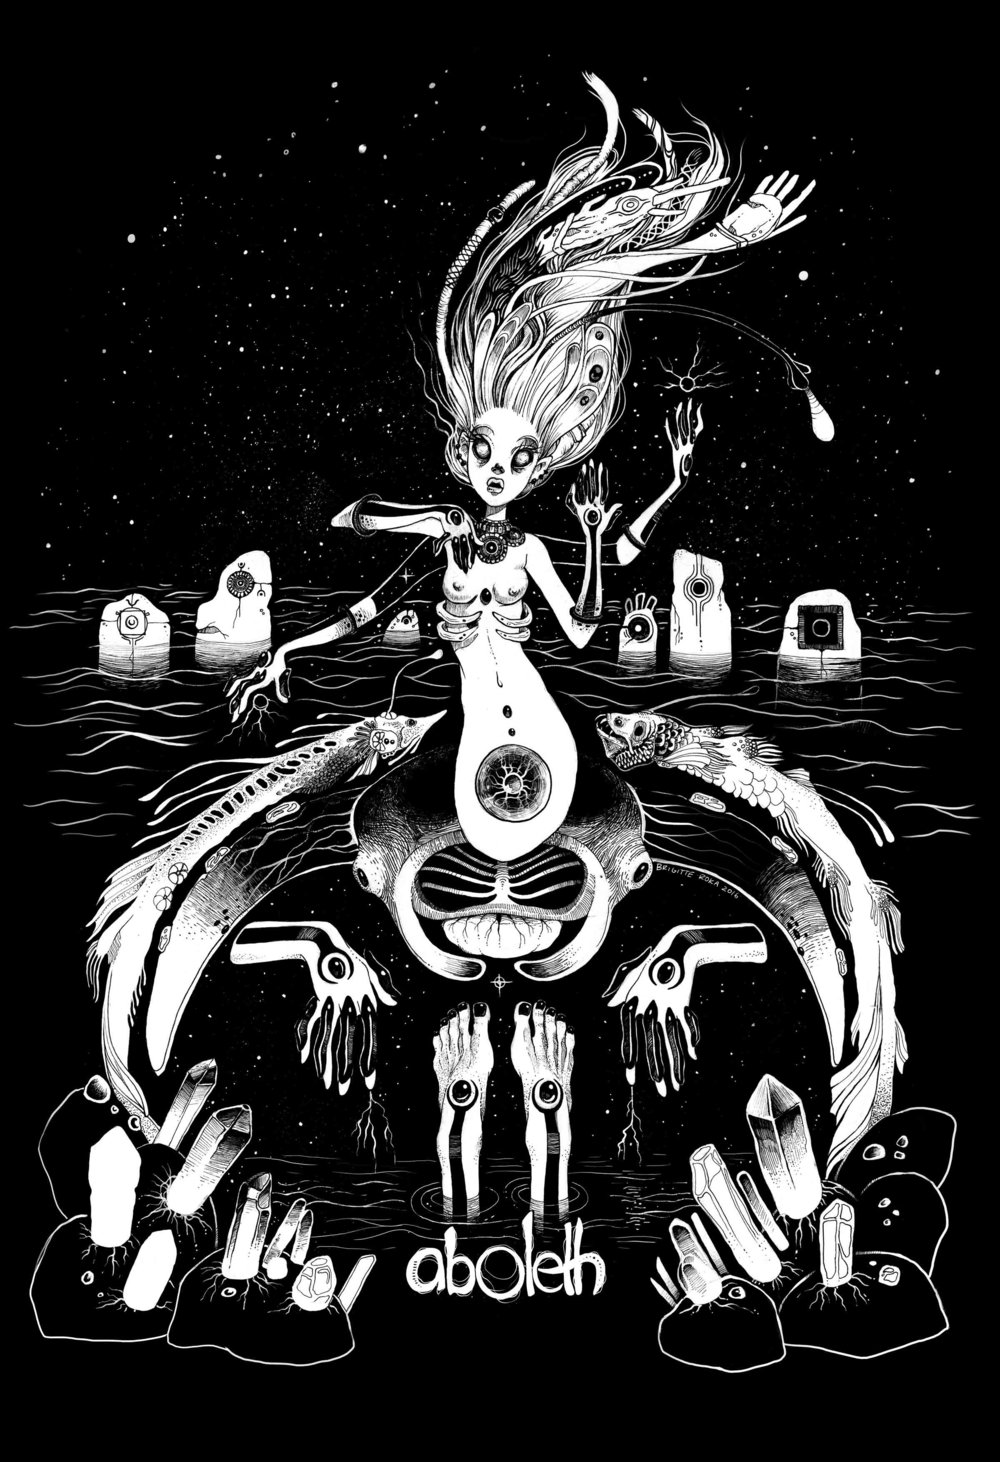 Sea Witch | Used as shirt design for Aboleth | Pen and Ink on paper | 2016